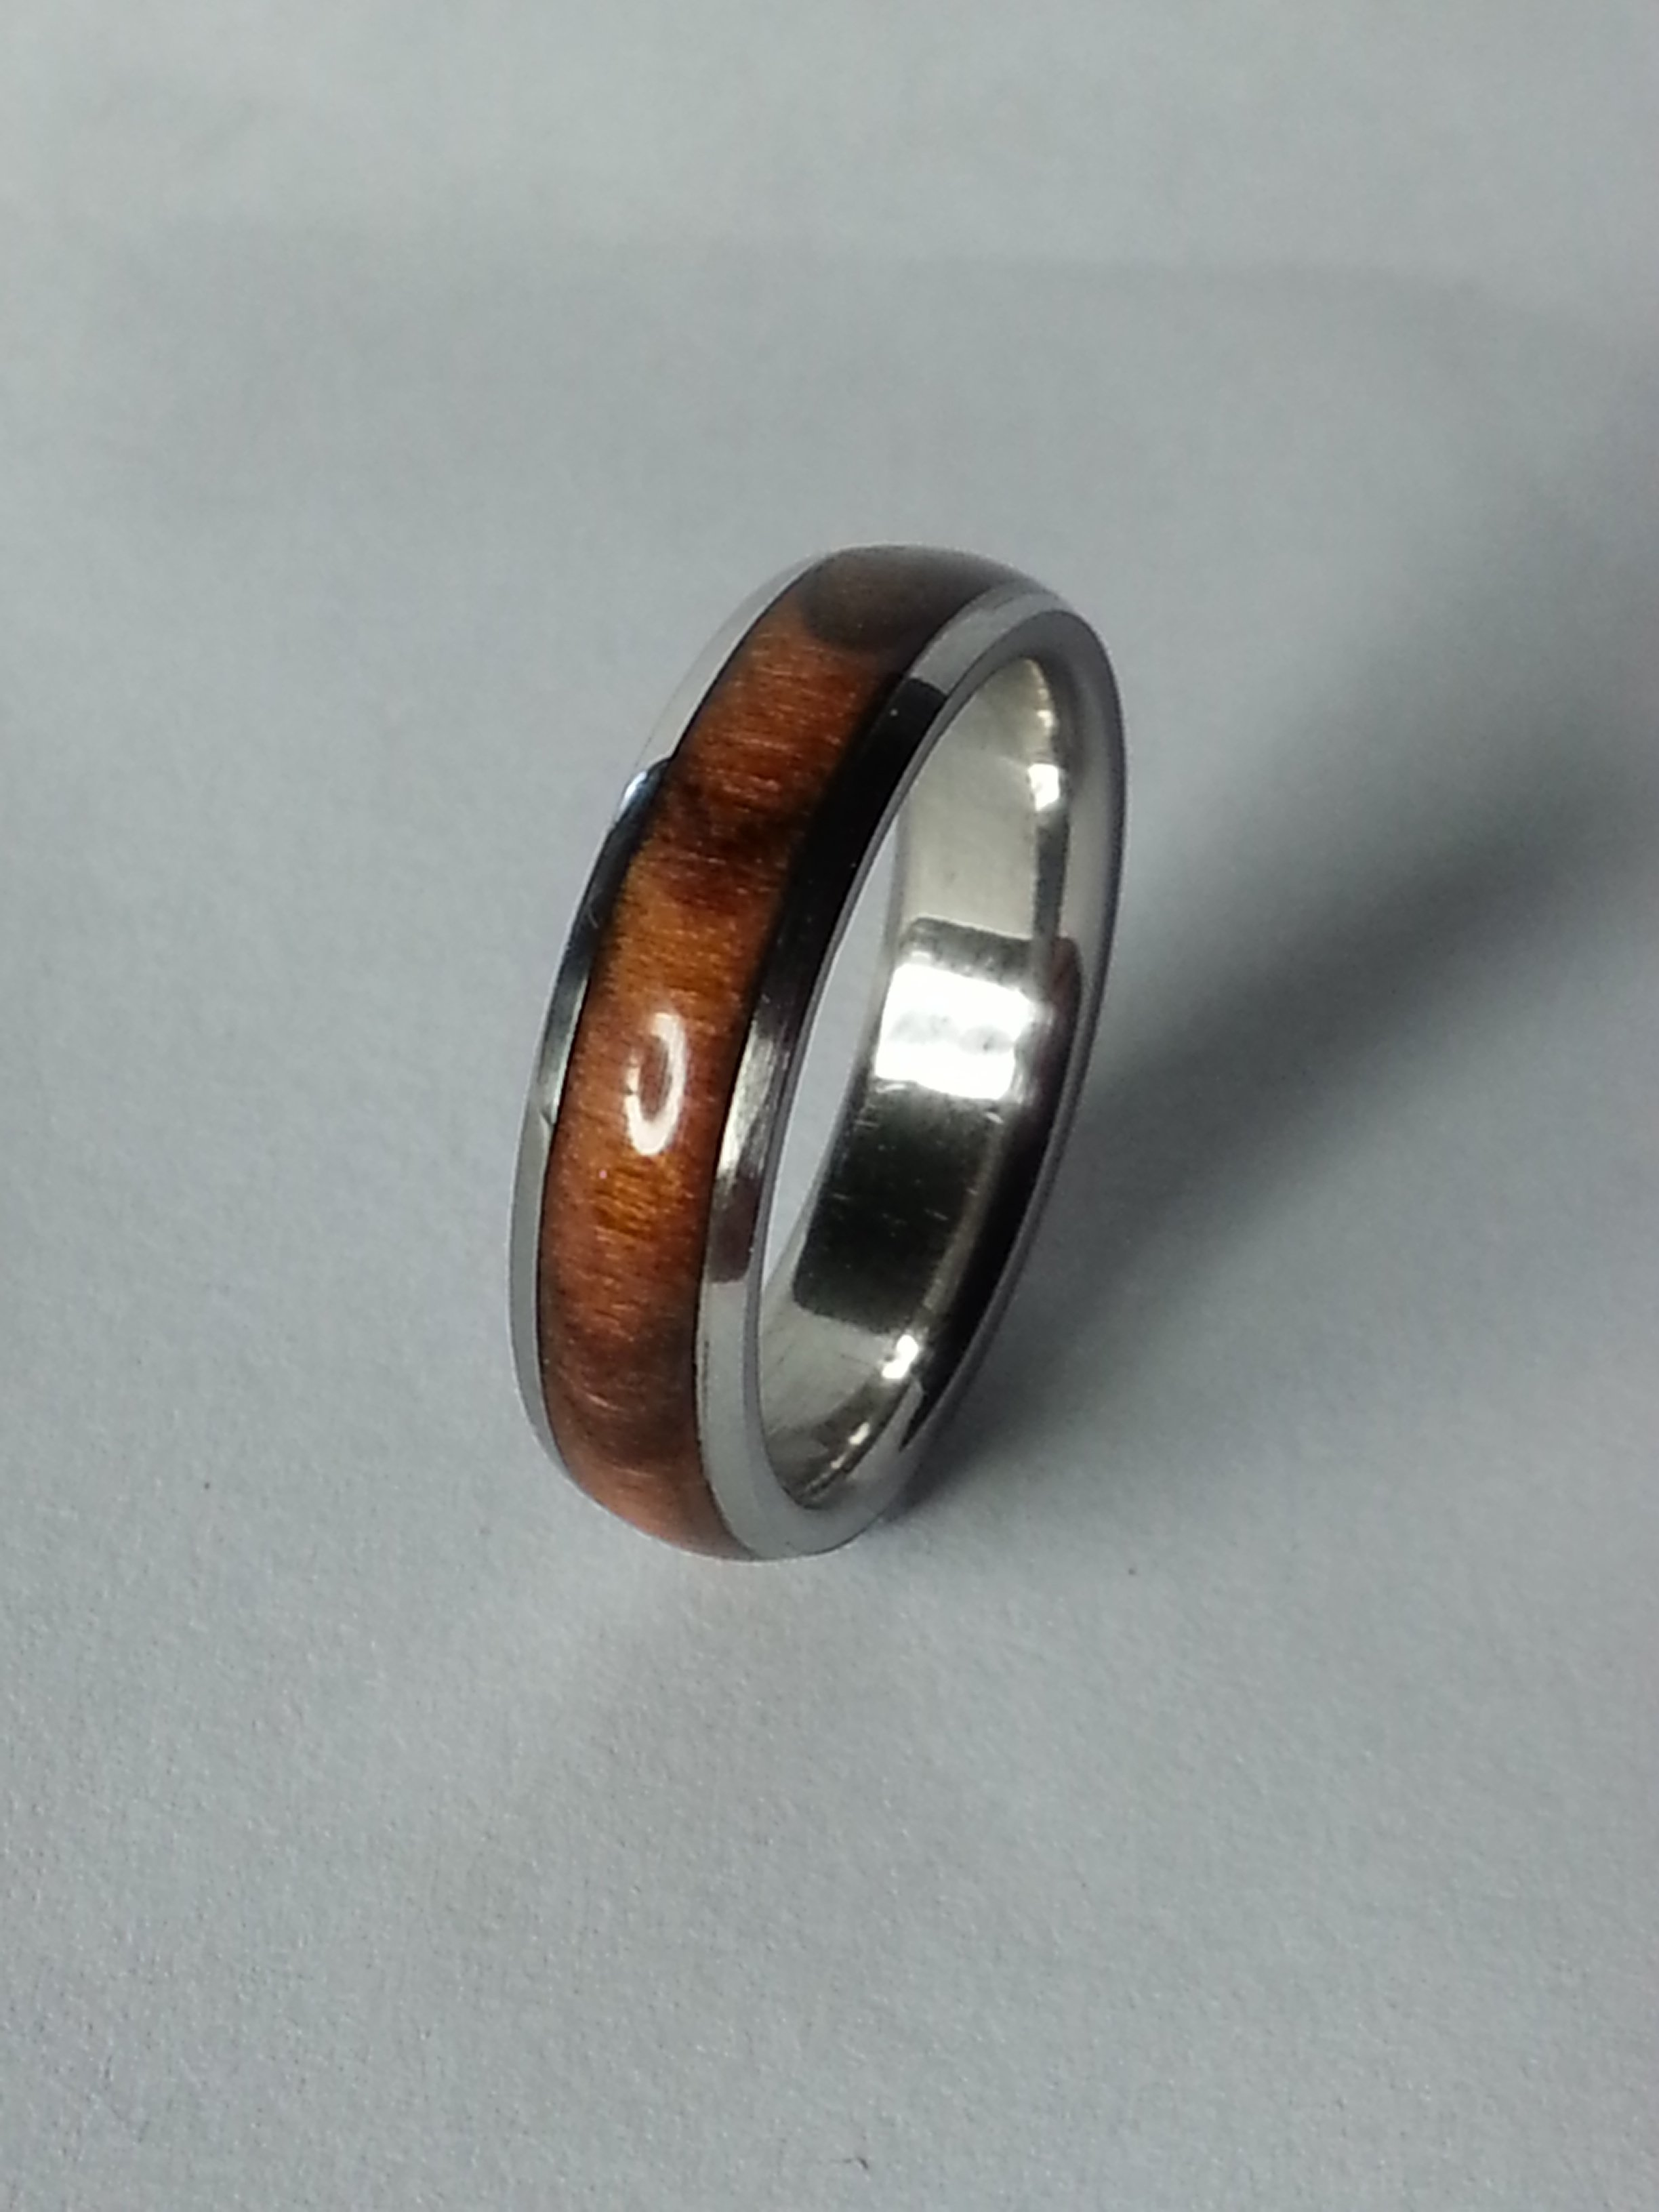 Stainless Steel Ring + Rosewood